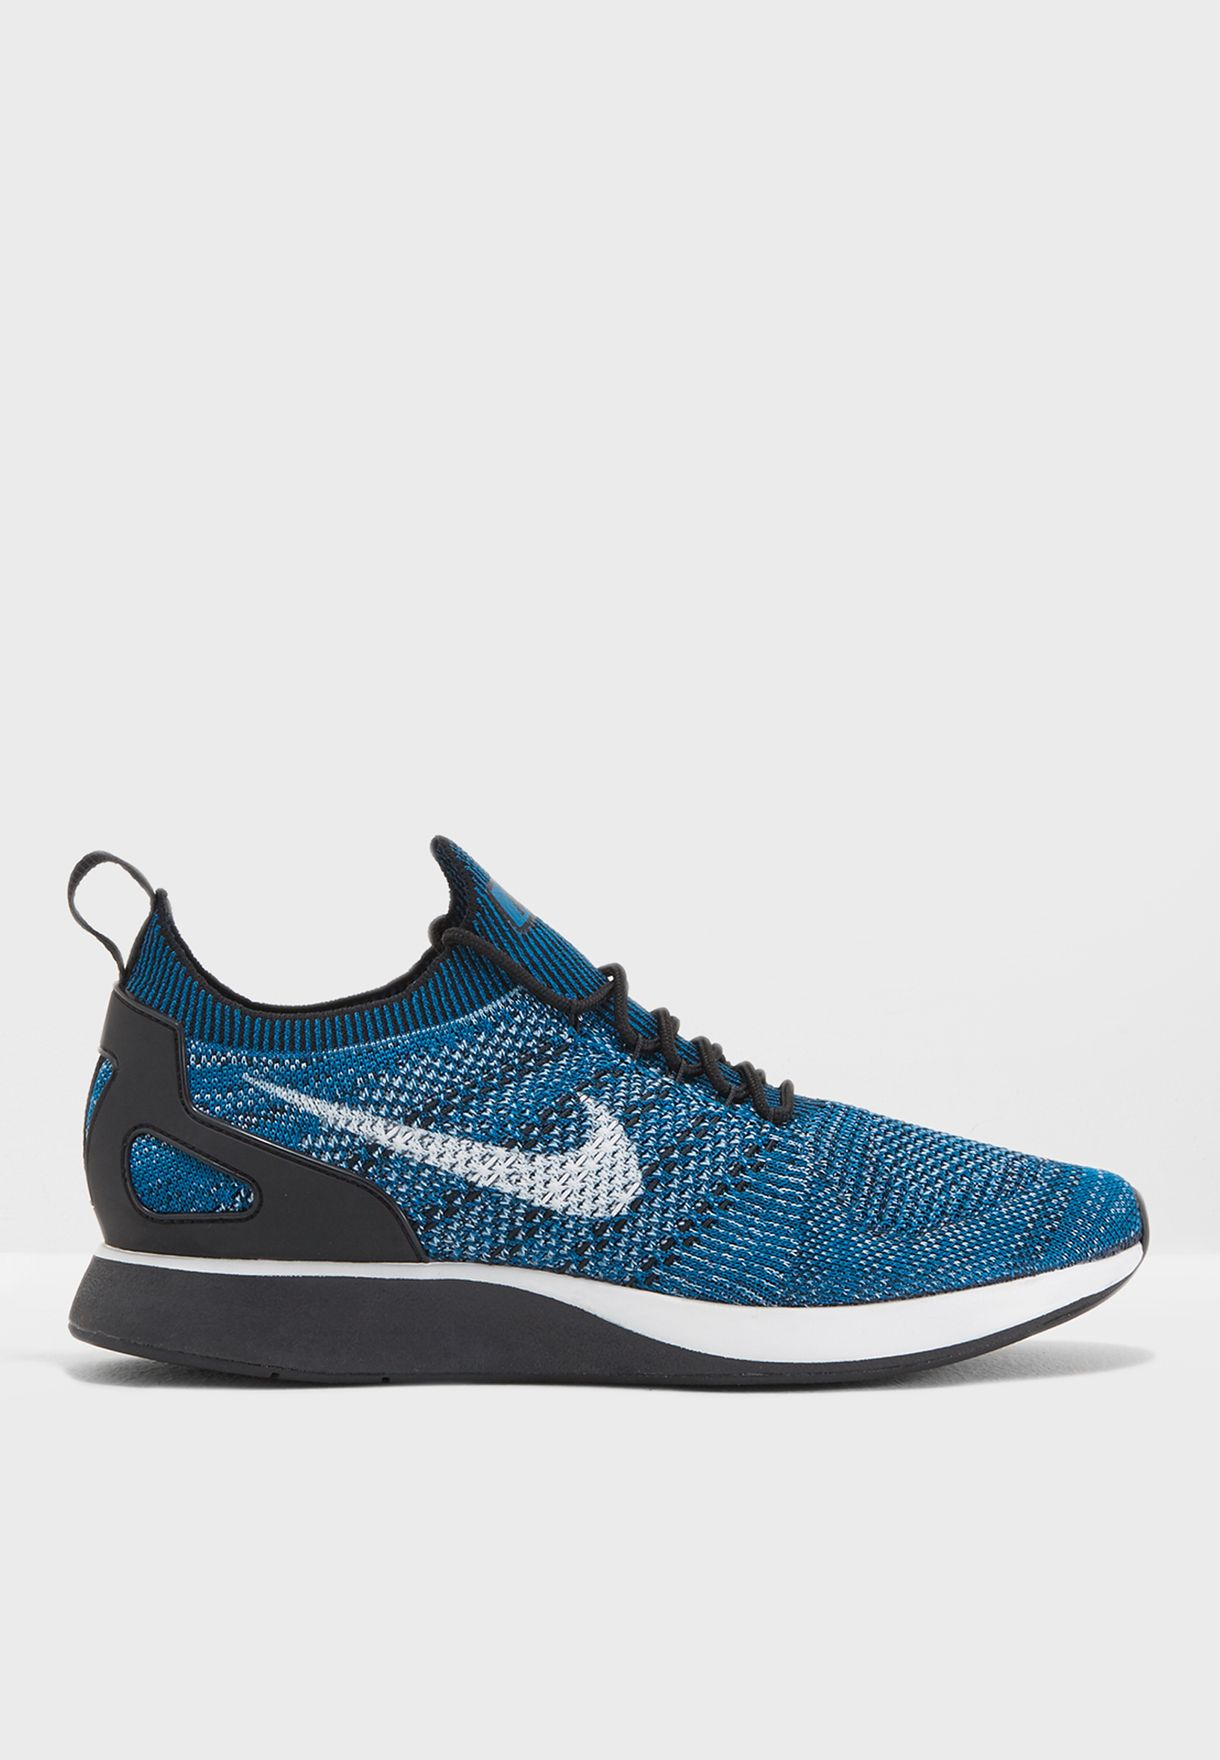 Shop Nike blue Air Zoom Mariah Flyknit Racer 918264-300 for Men in ... 7ad8d035b